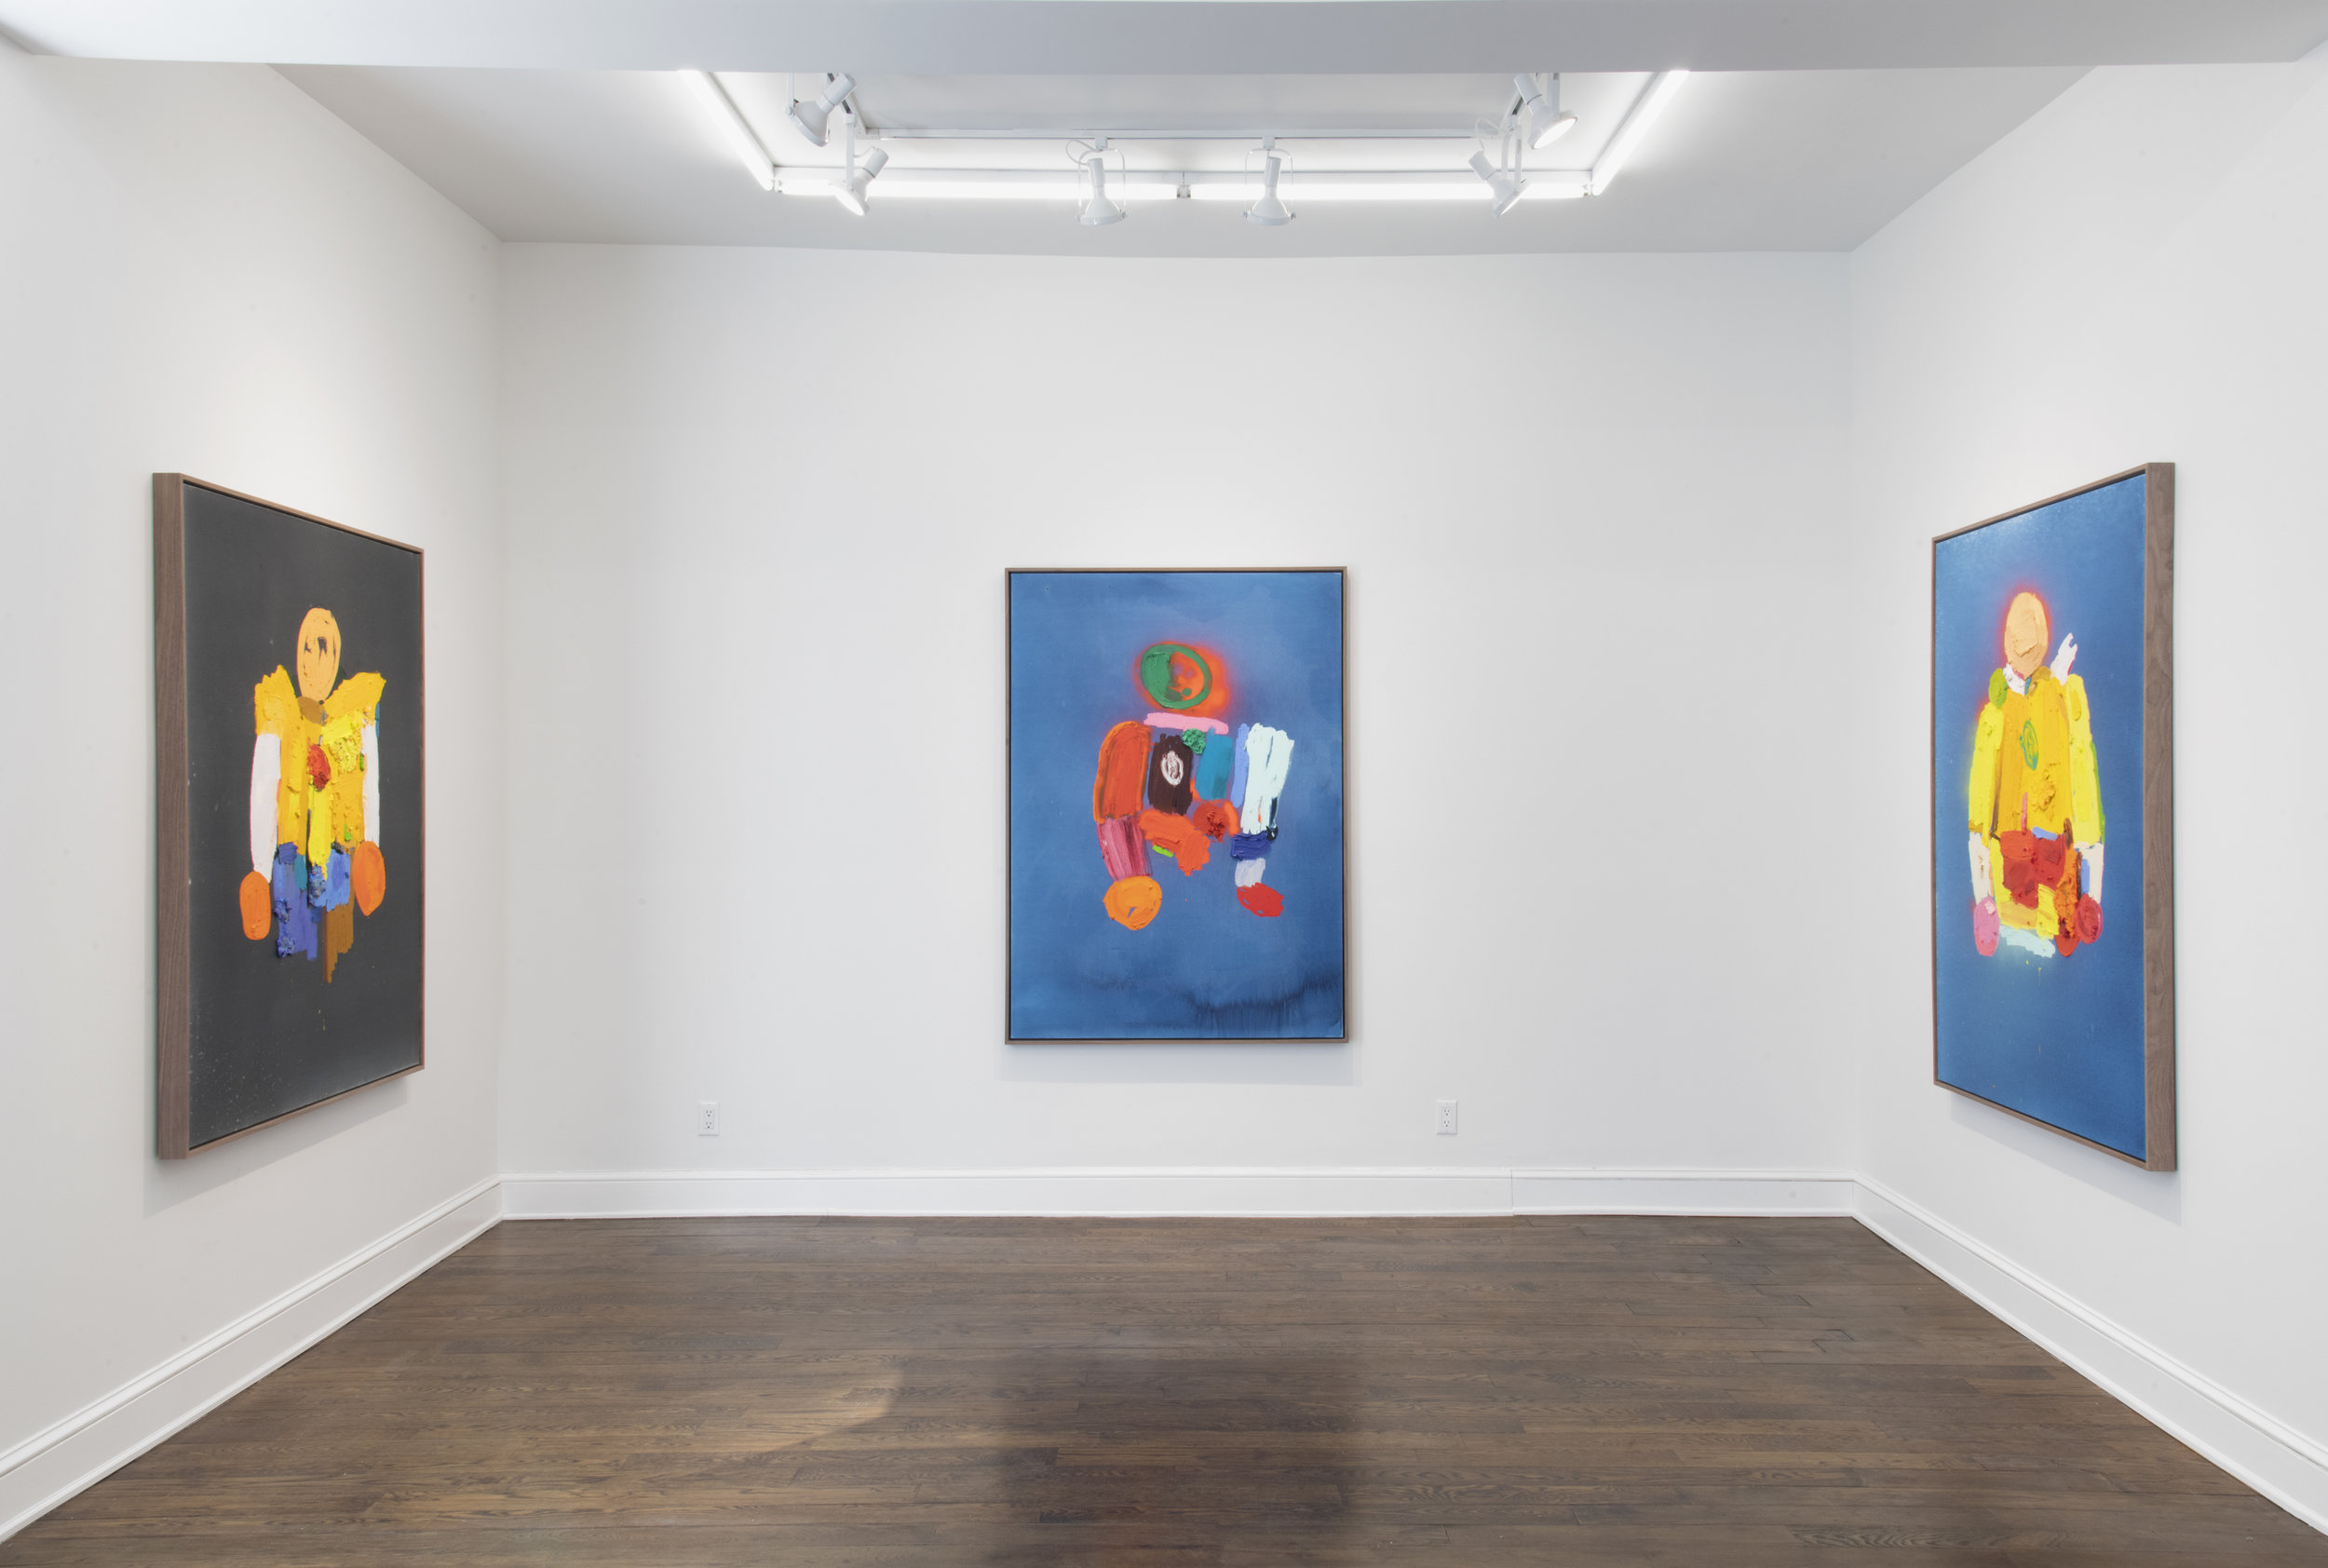 Installation of Horowitz paintings at the Johannes Vogt Gallery. Image courtesy of the gallery.